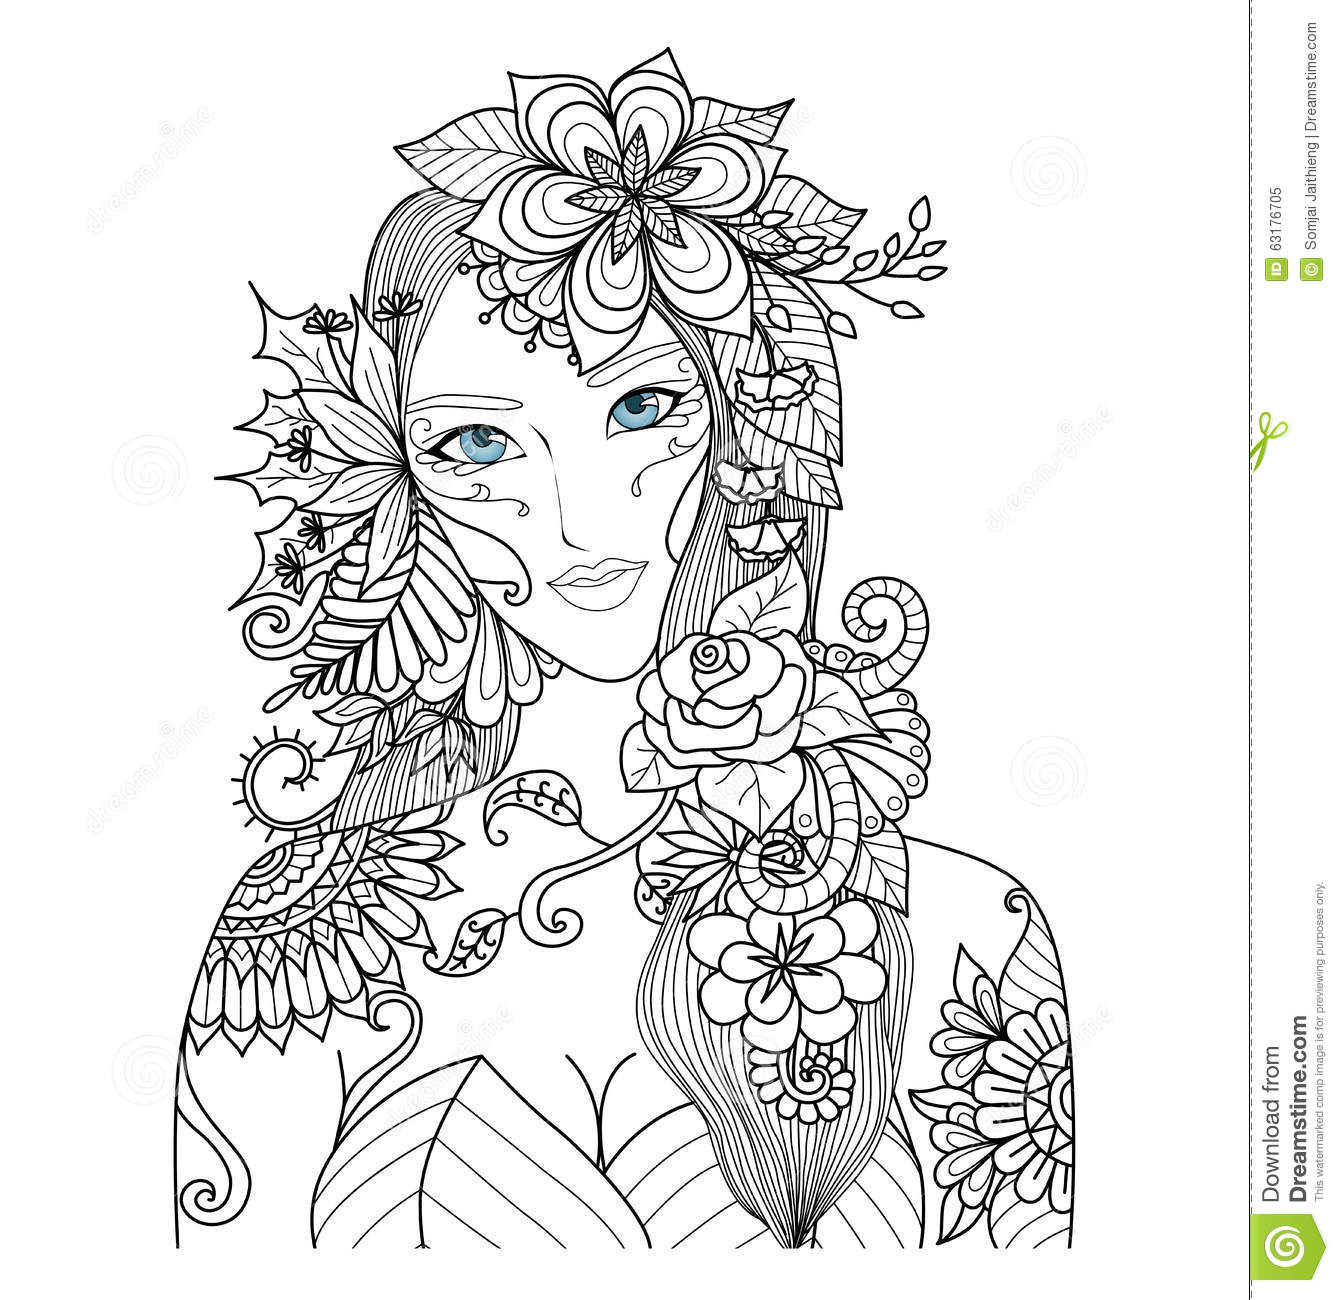 forest fairy coloring pages - Selo.l-ink.co